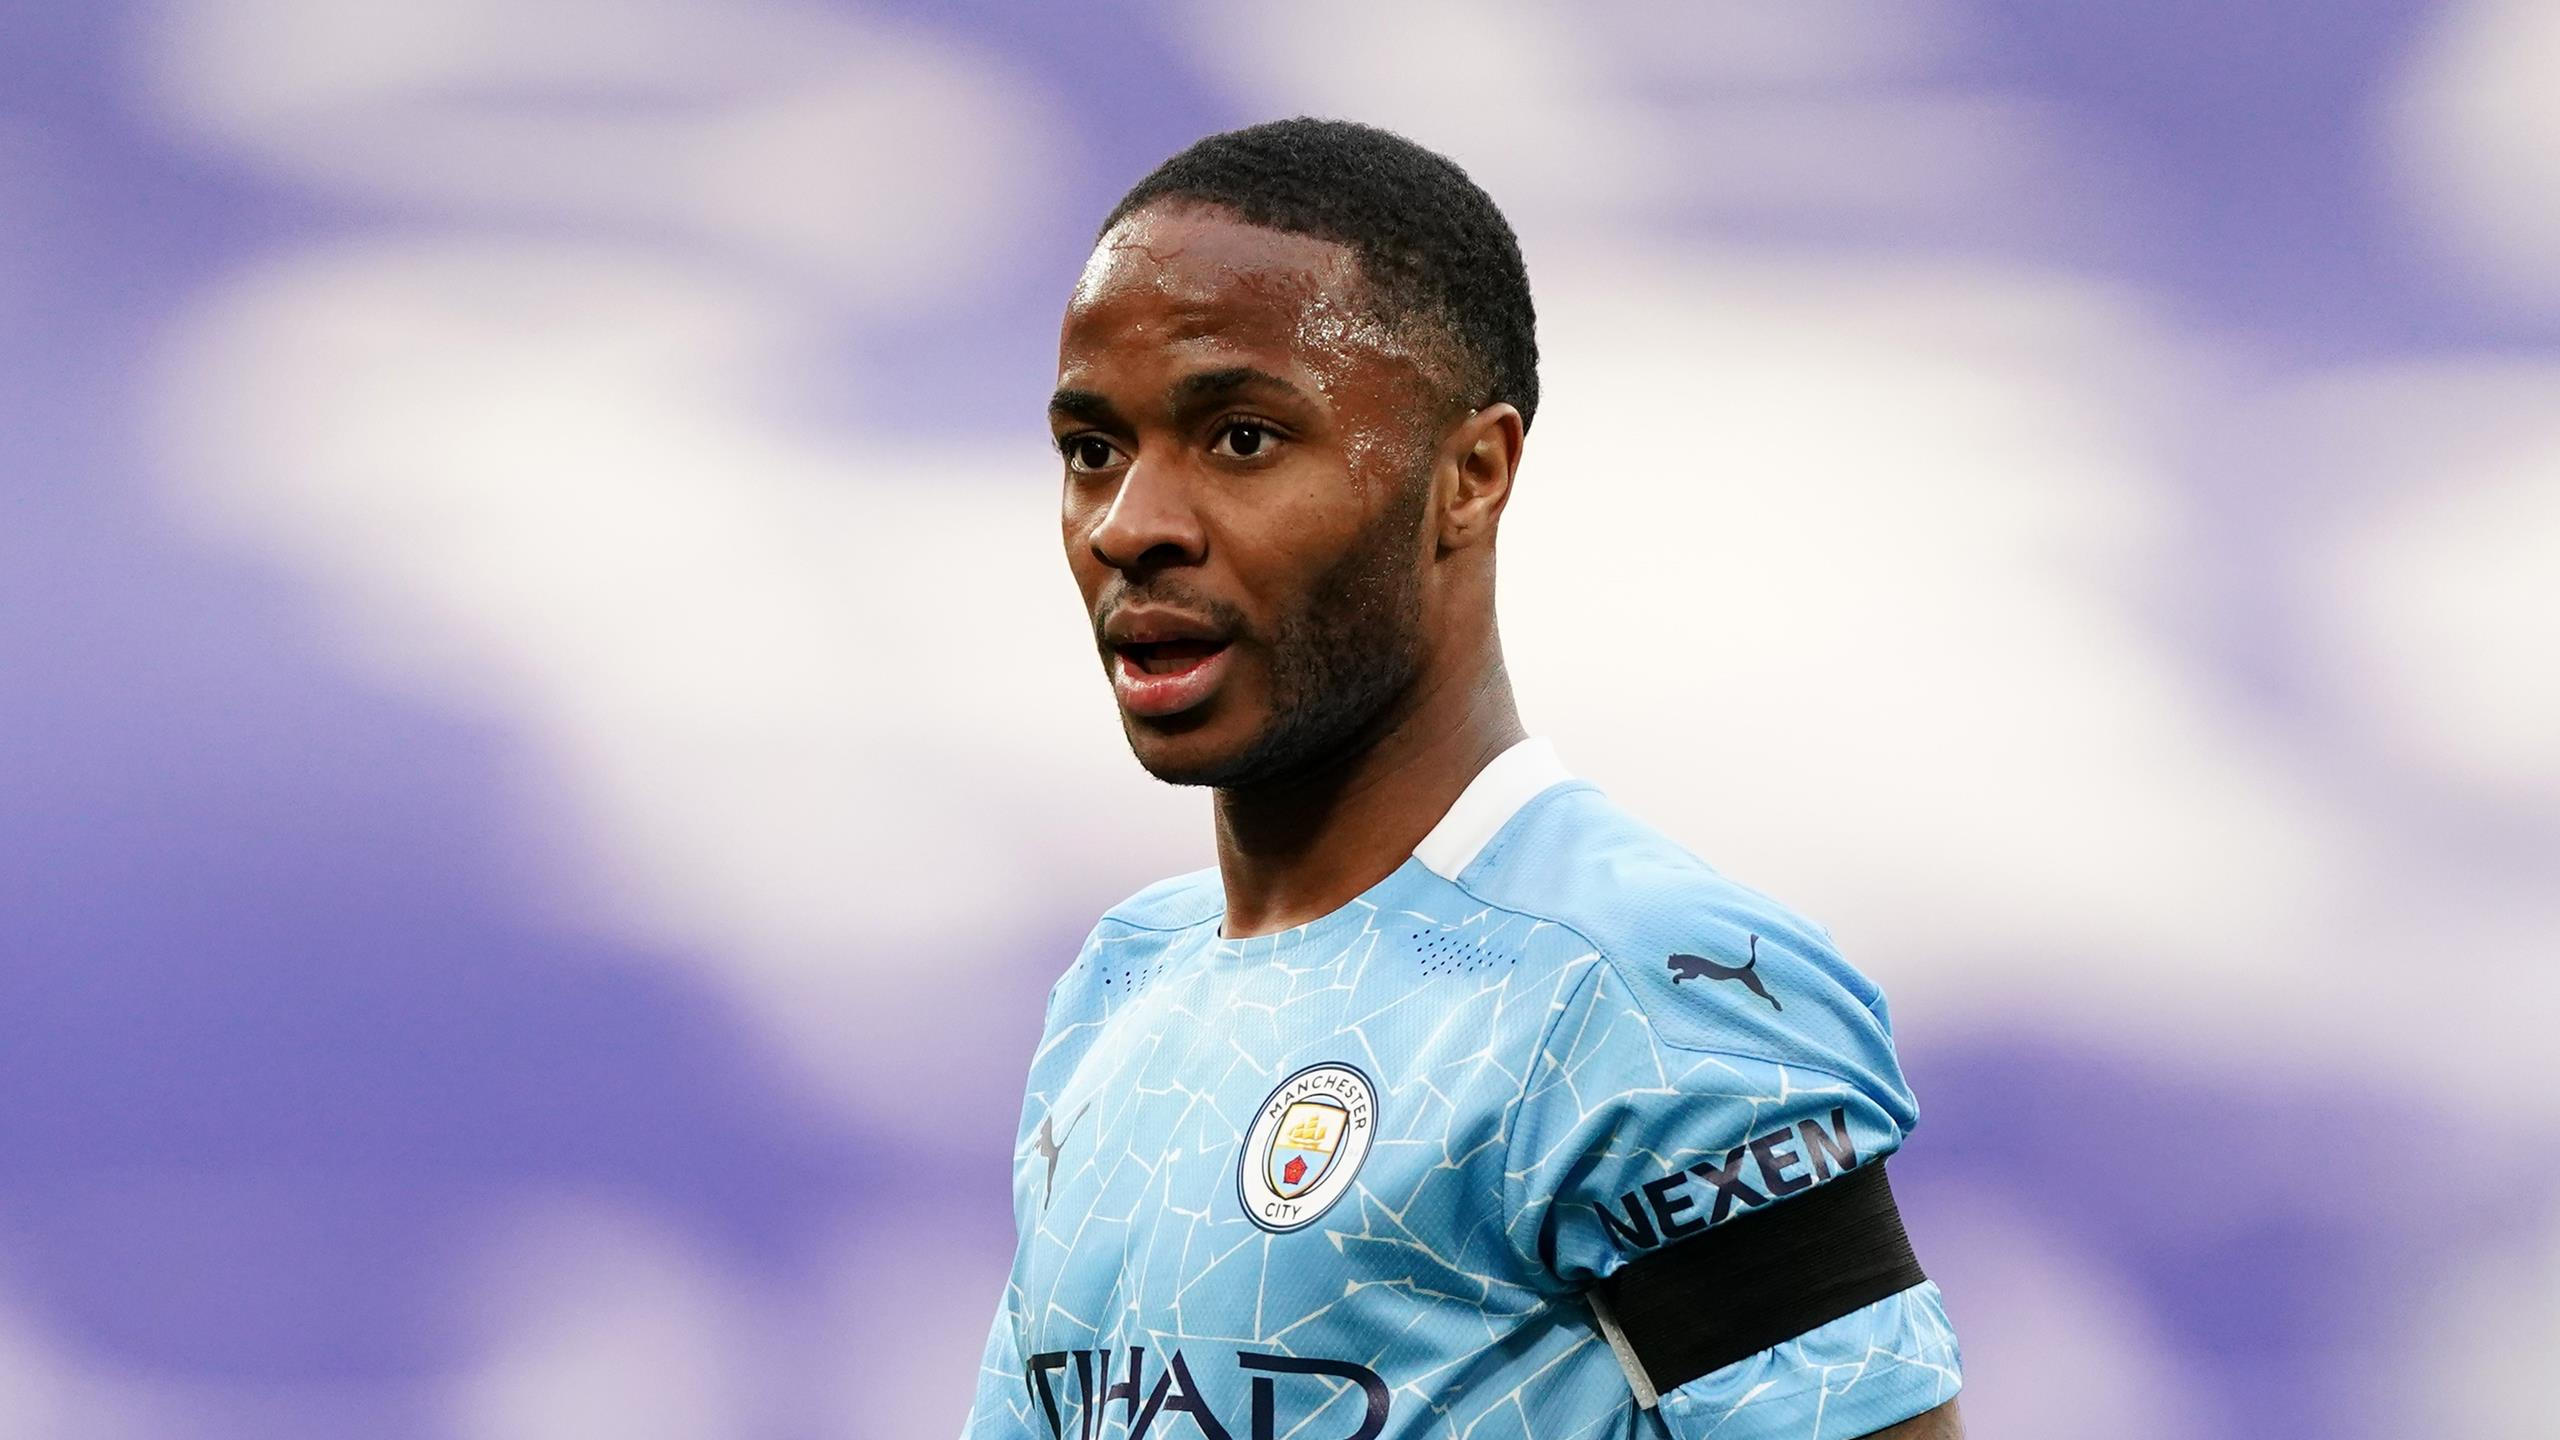 Man City's Sterling racially abused on social media thumbnail